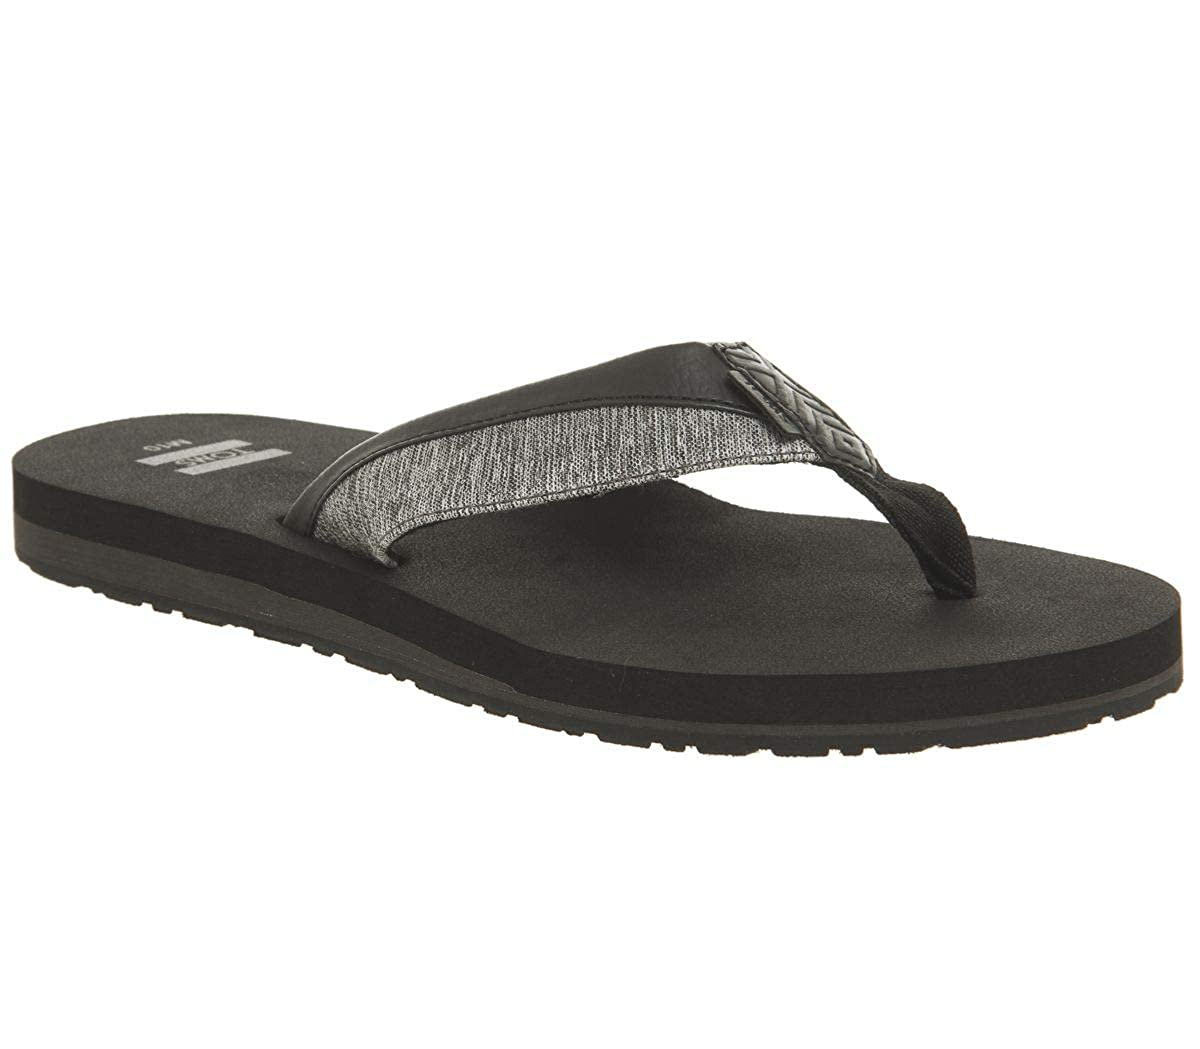 TALLA 46 EU. TOMS Men Santiago Forged Iron Grey, Zapatos de Playa y Piscina para Hombre